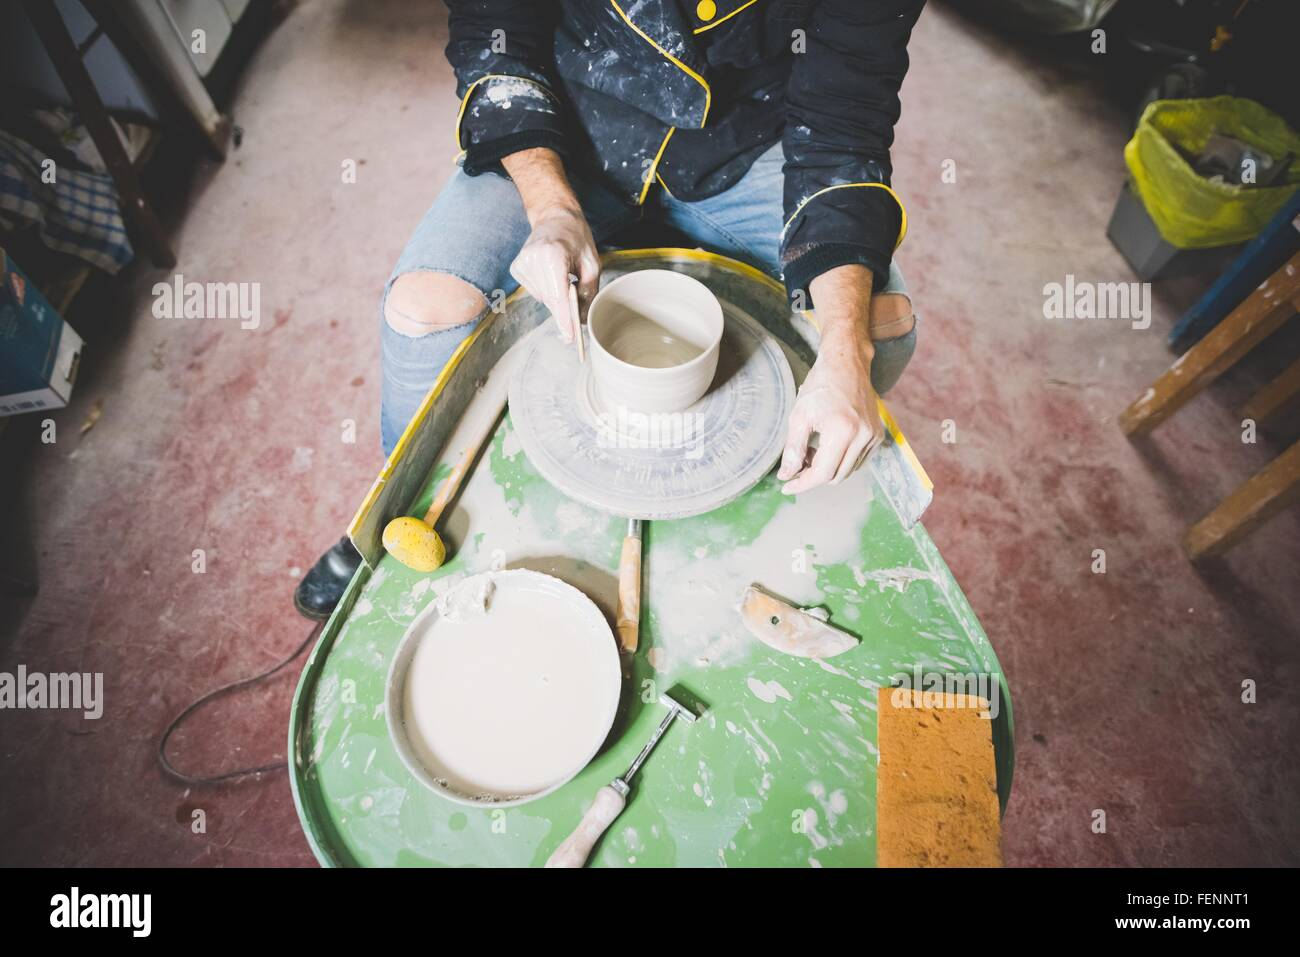 High angle view of mid adult man making clay pot on pottery wheel Stock Photo